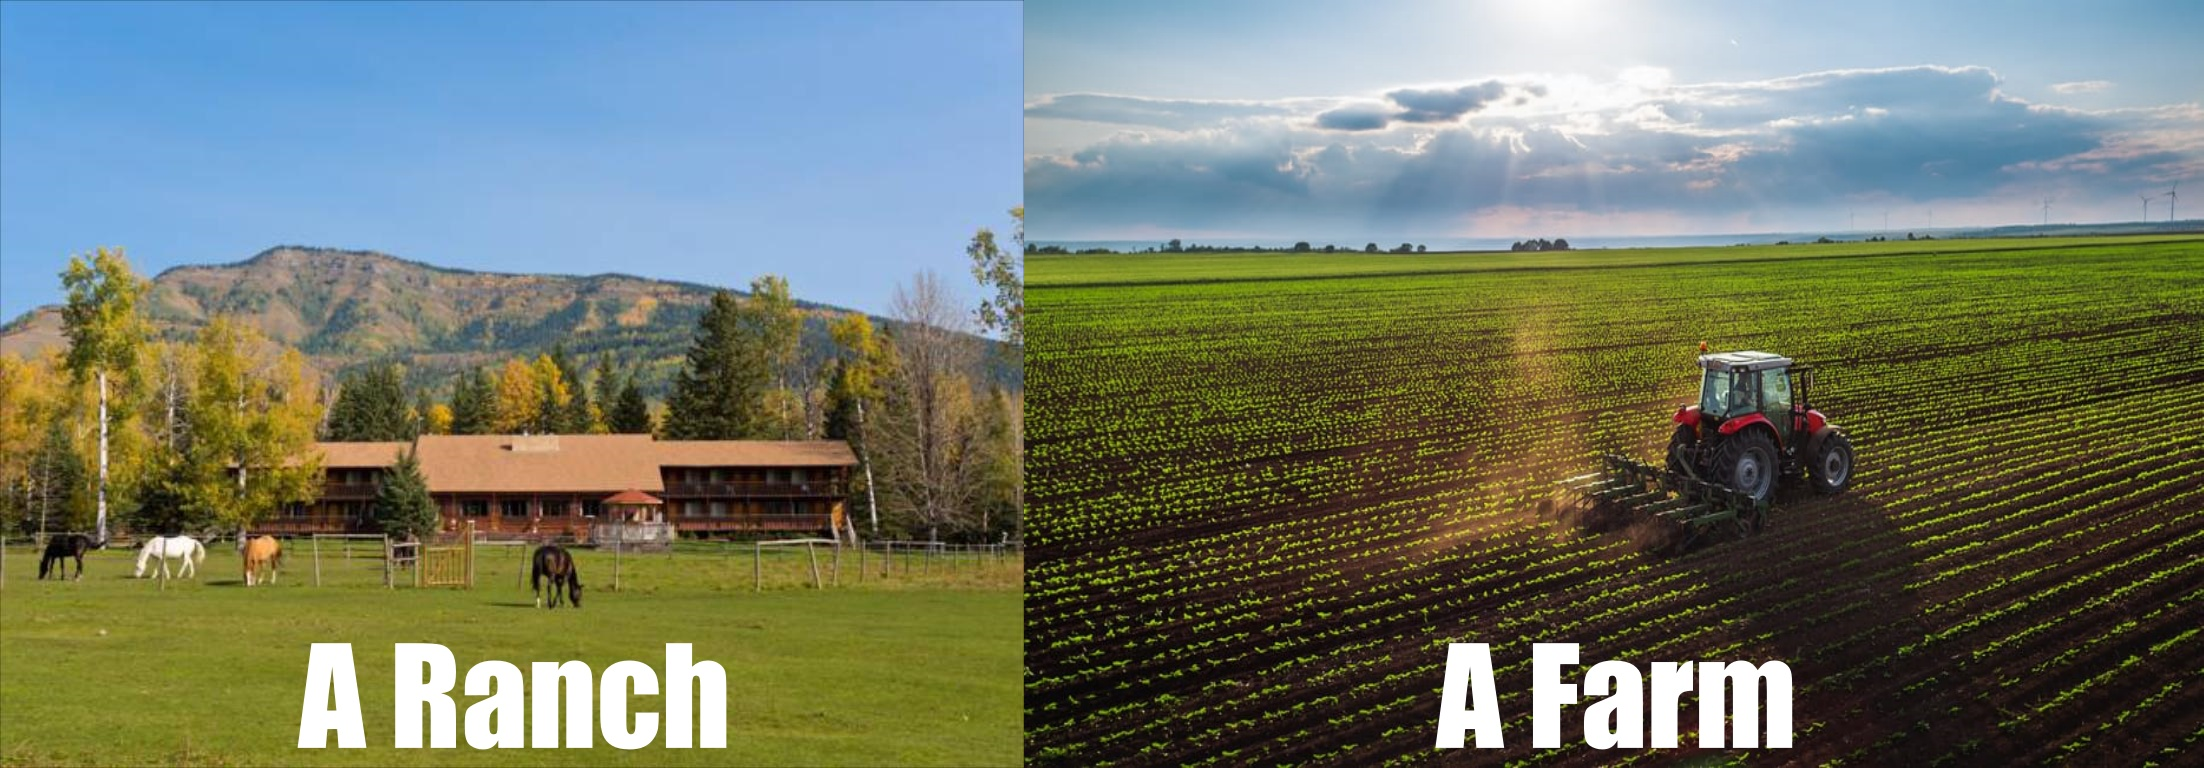 Difference Between a Ranch and a Farm